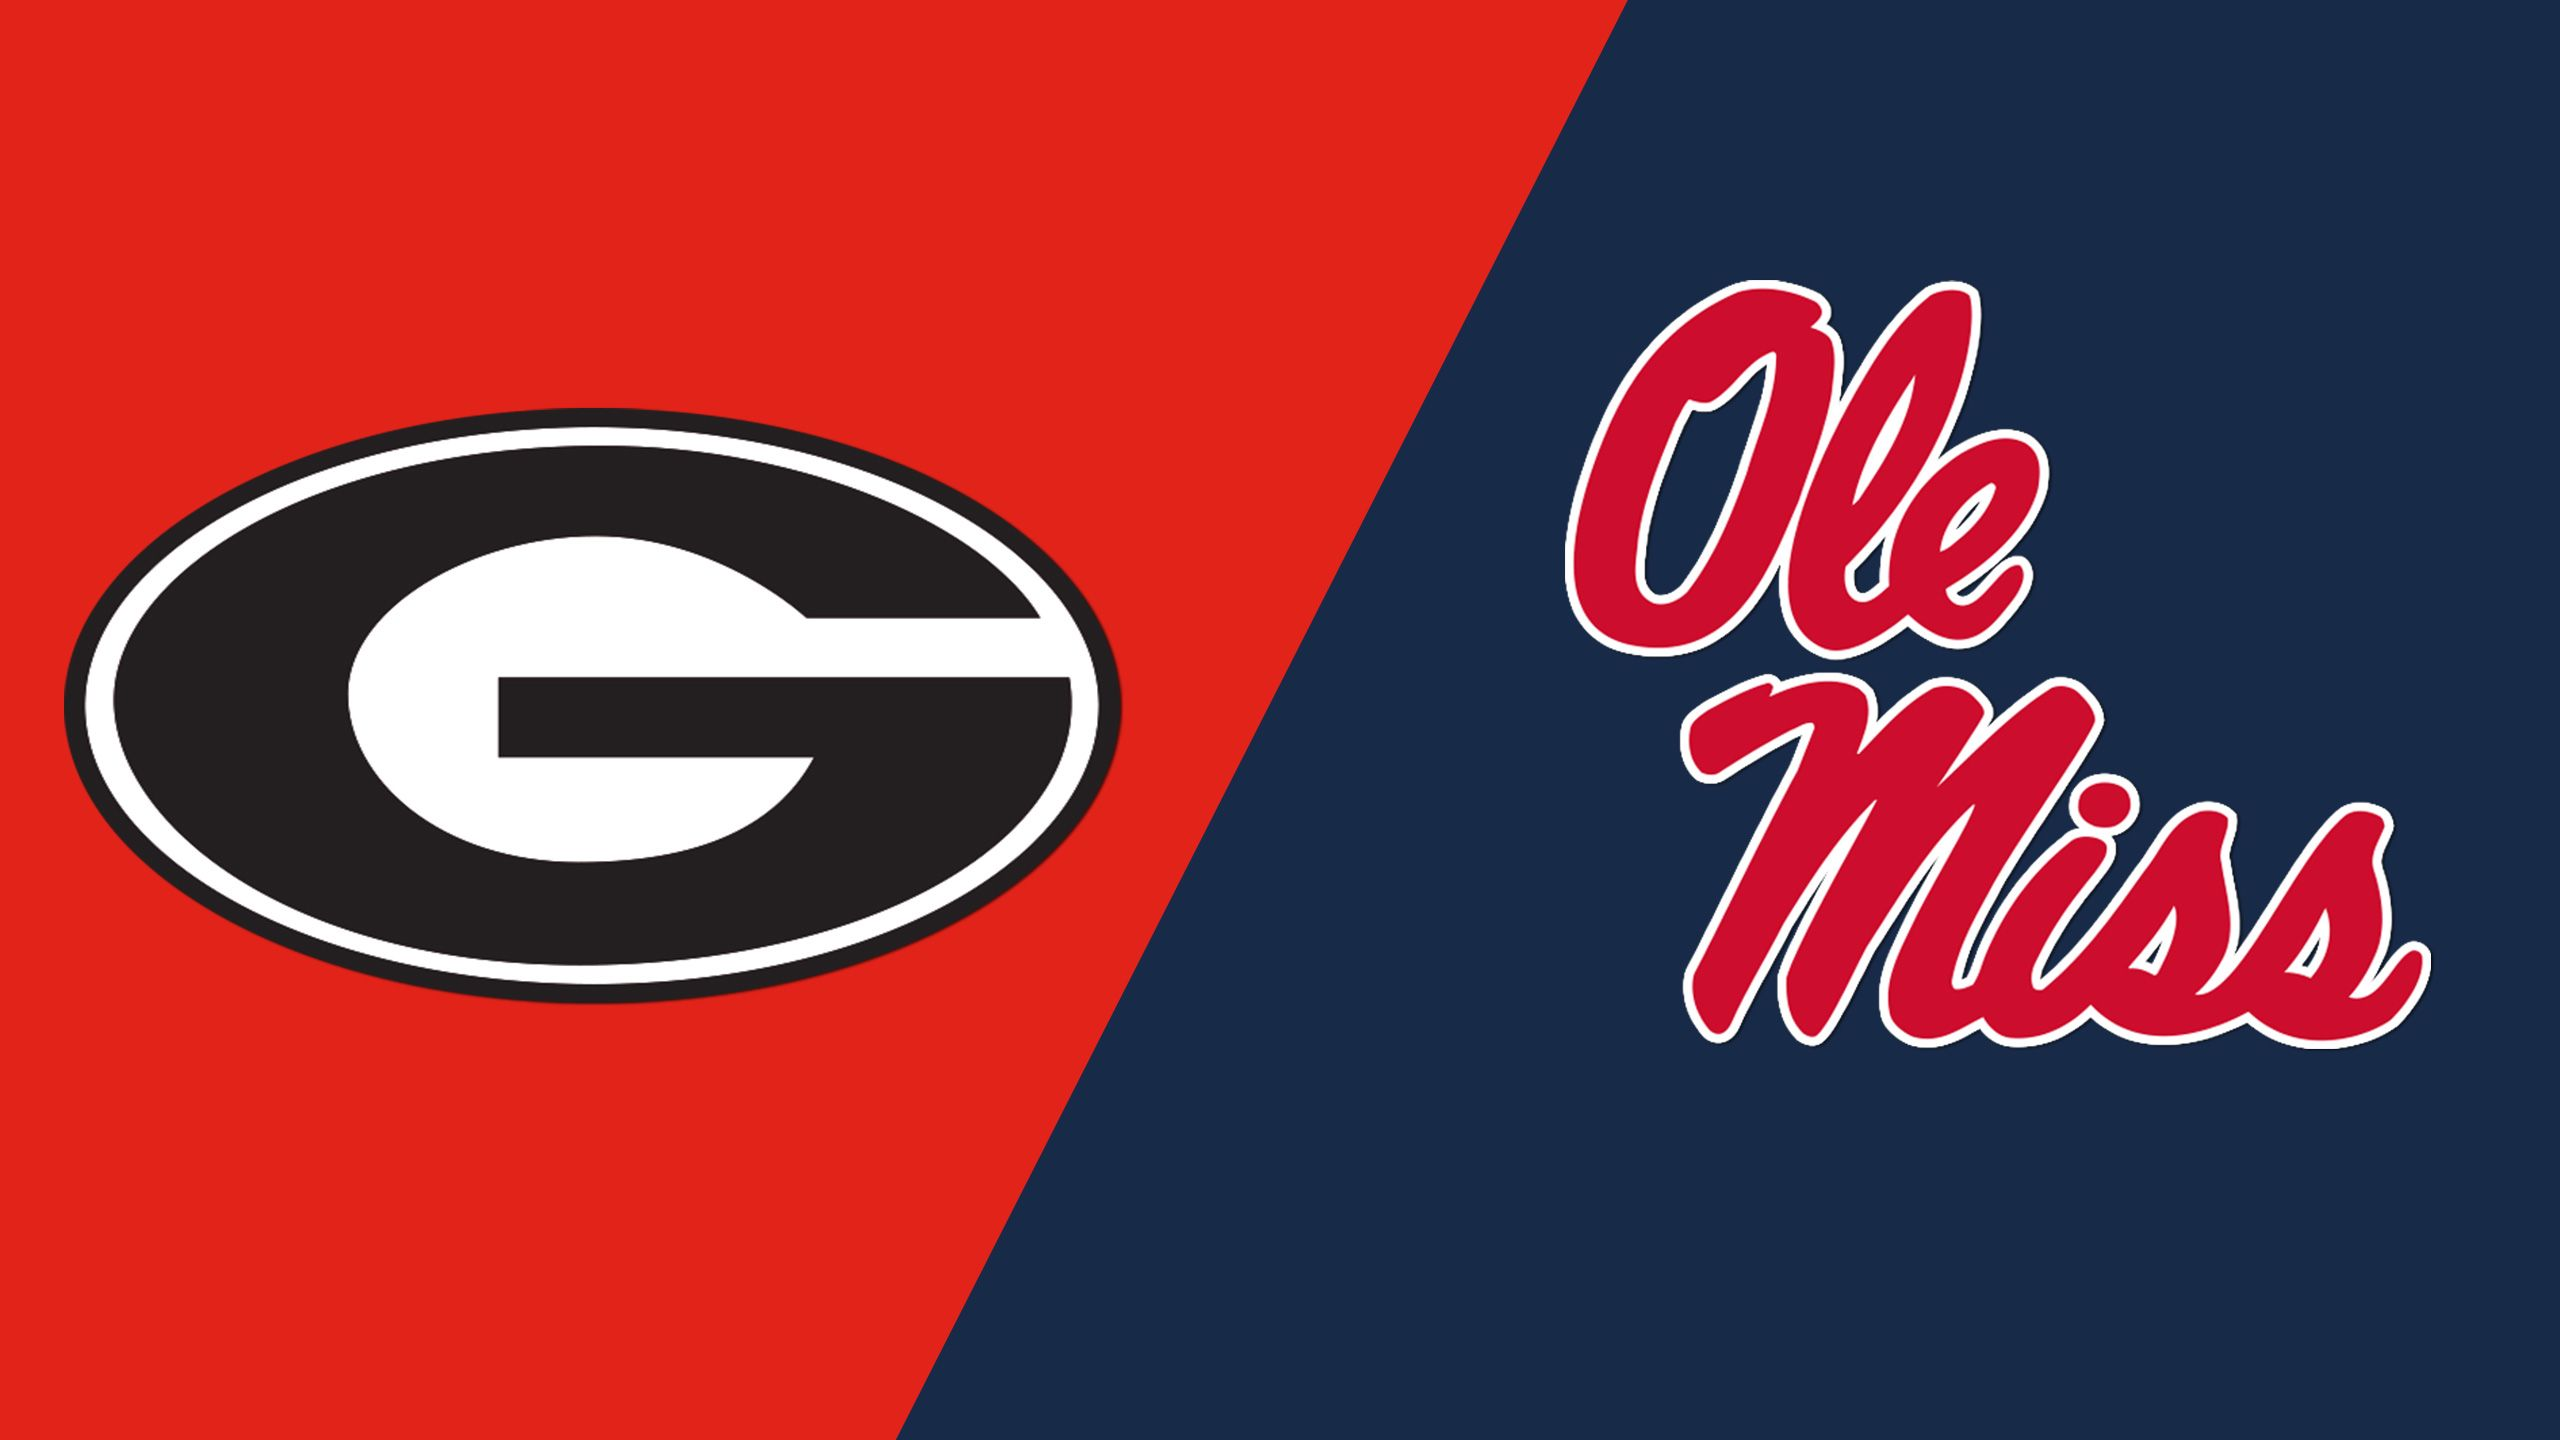 #8 Georgia vs. #4 Ole Miss (Third Round) (SEC Baseball Tournament)